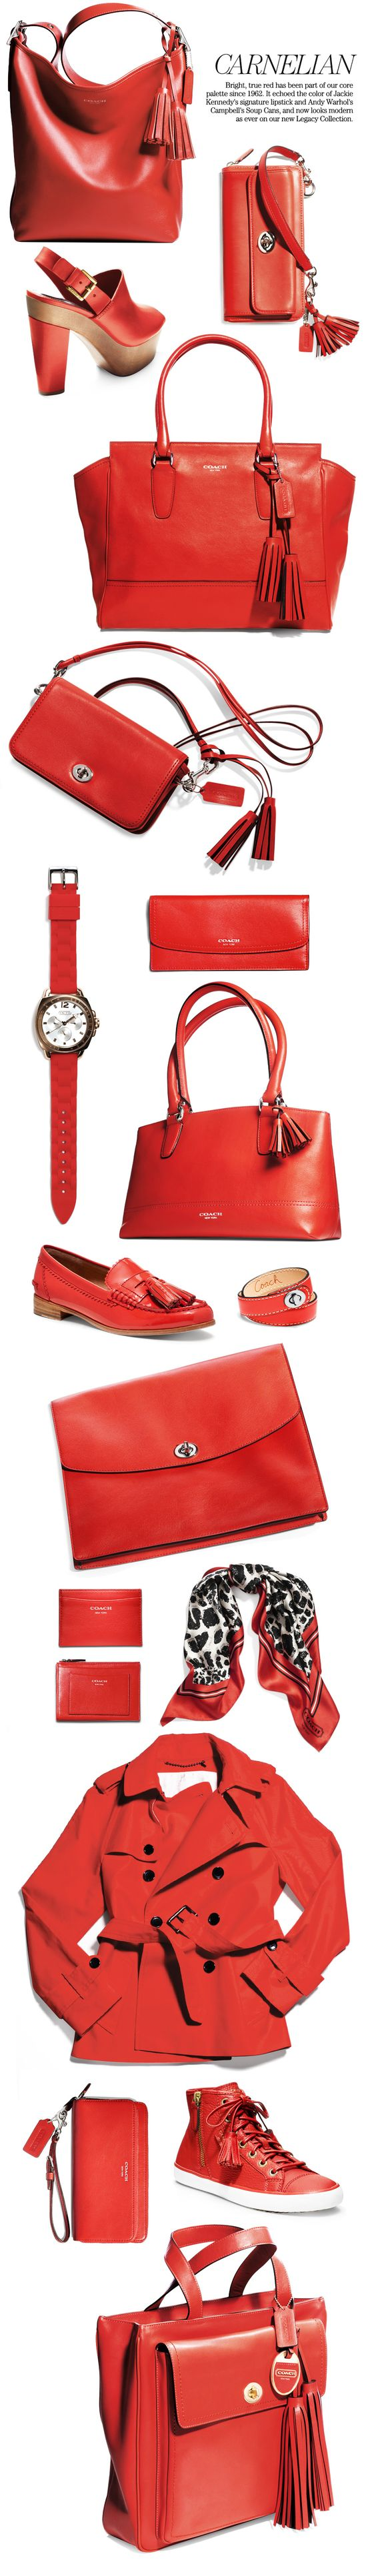 Coach Legacy Collection in Carnelian: See it All